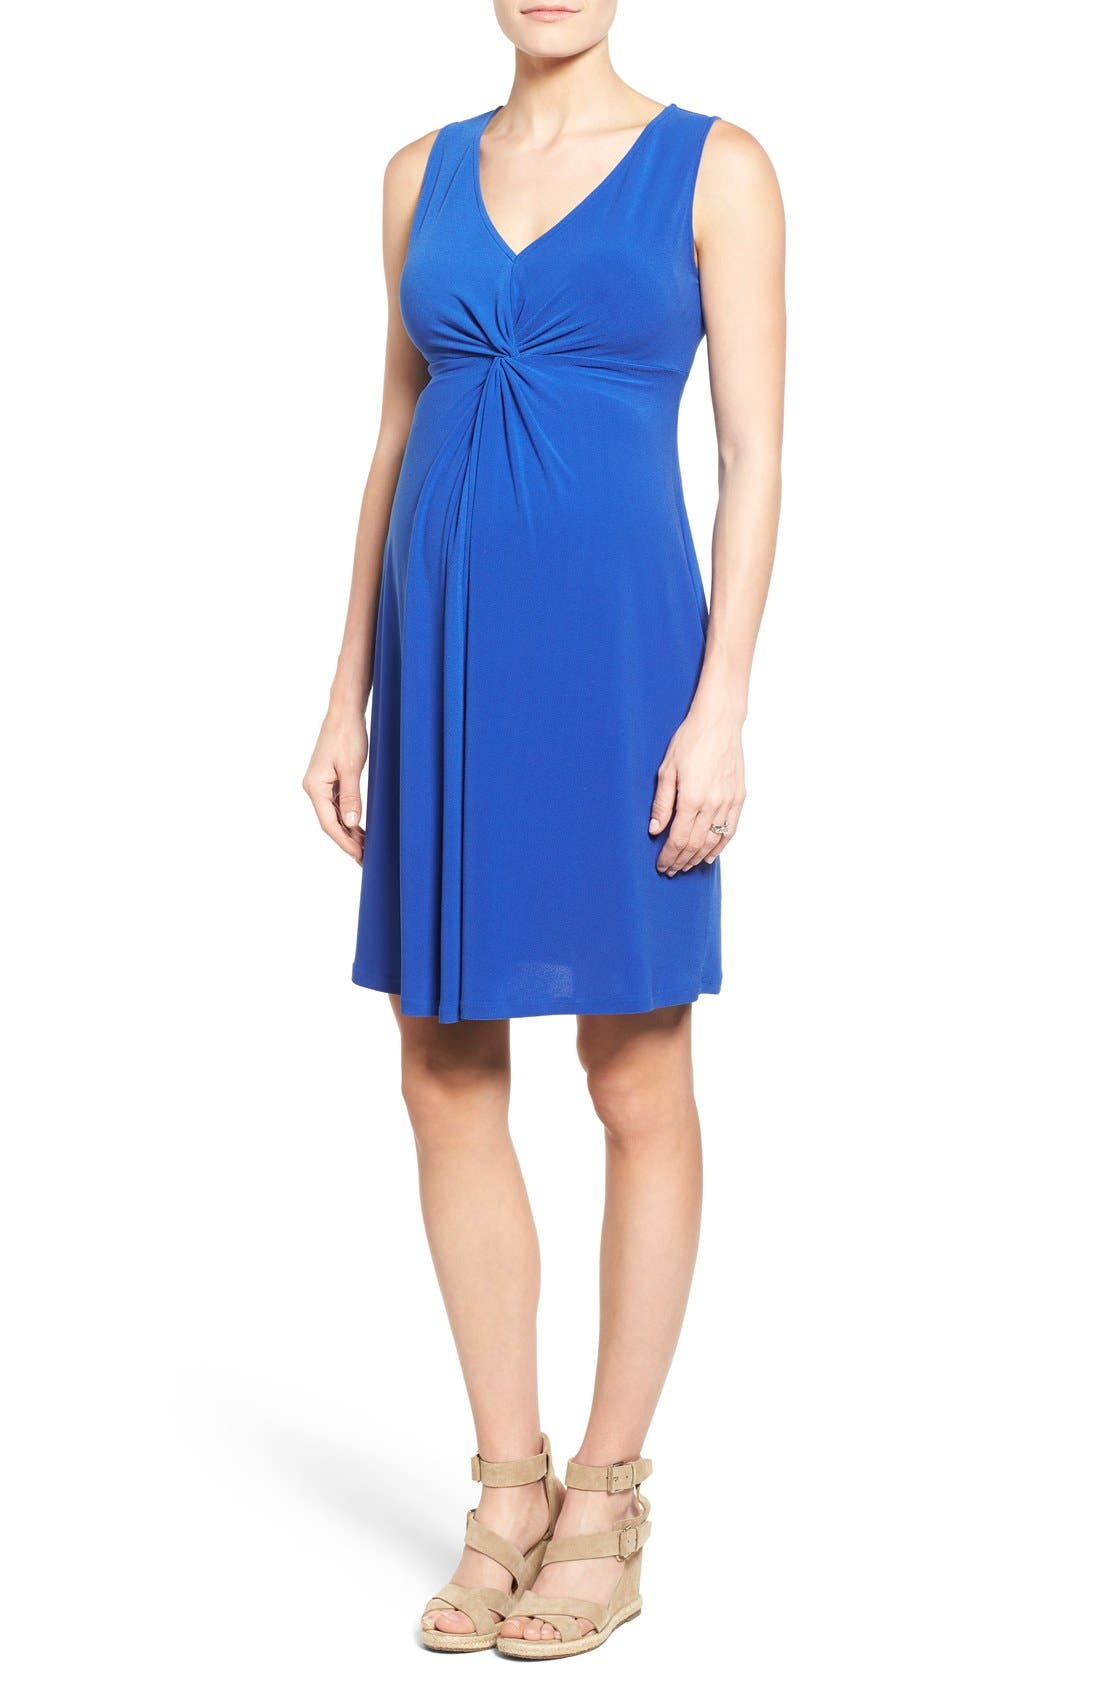 LEOTA Sleeveless Maternity Dress